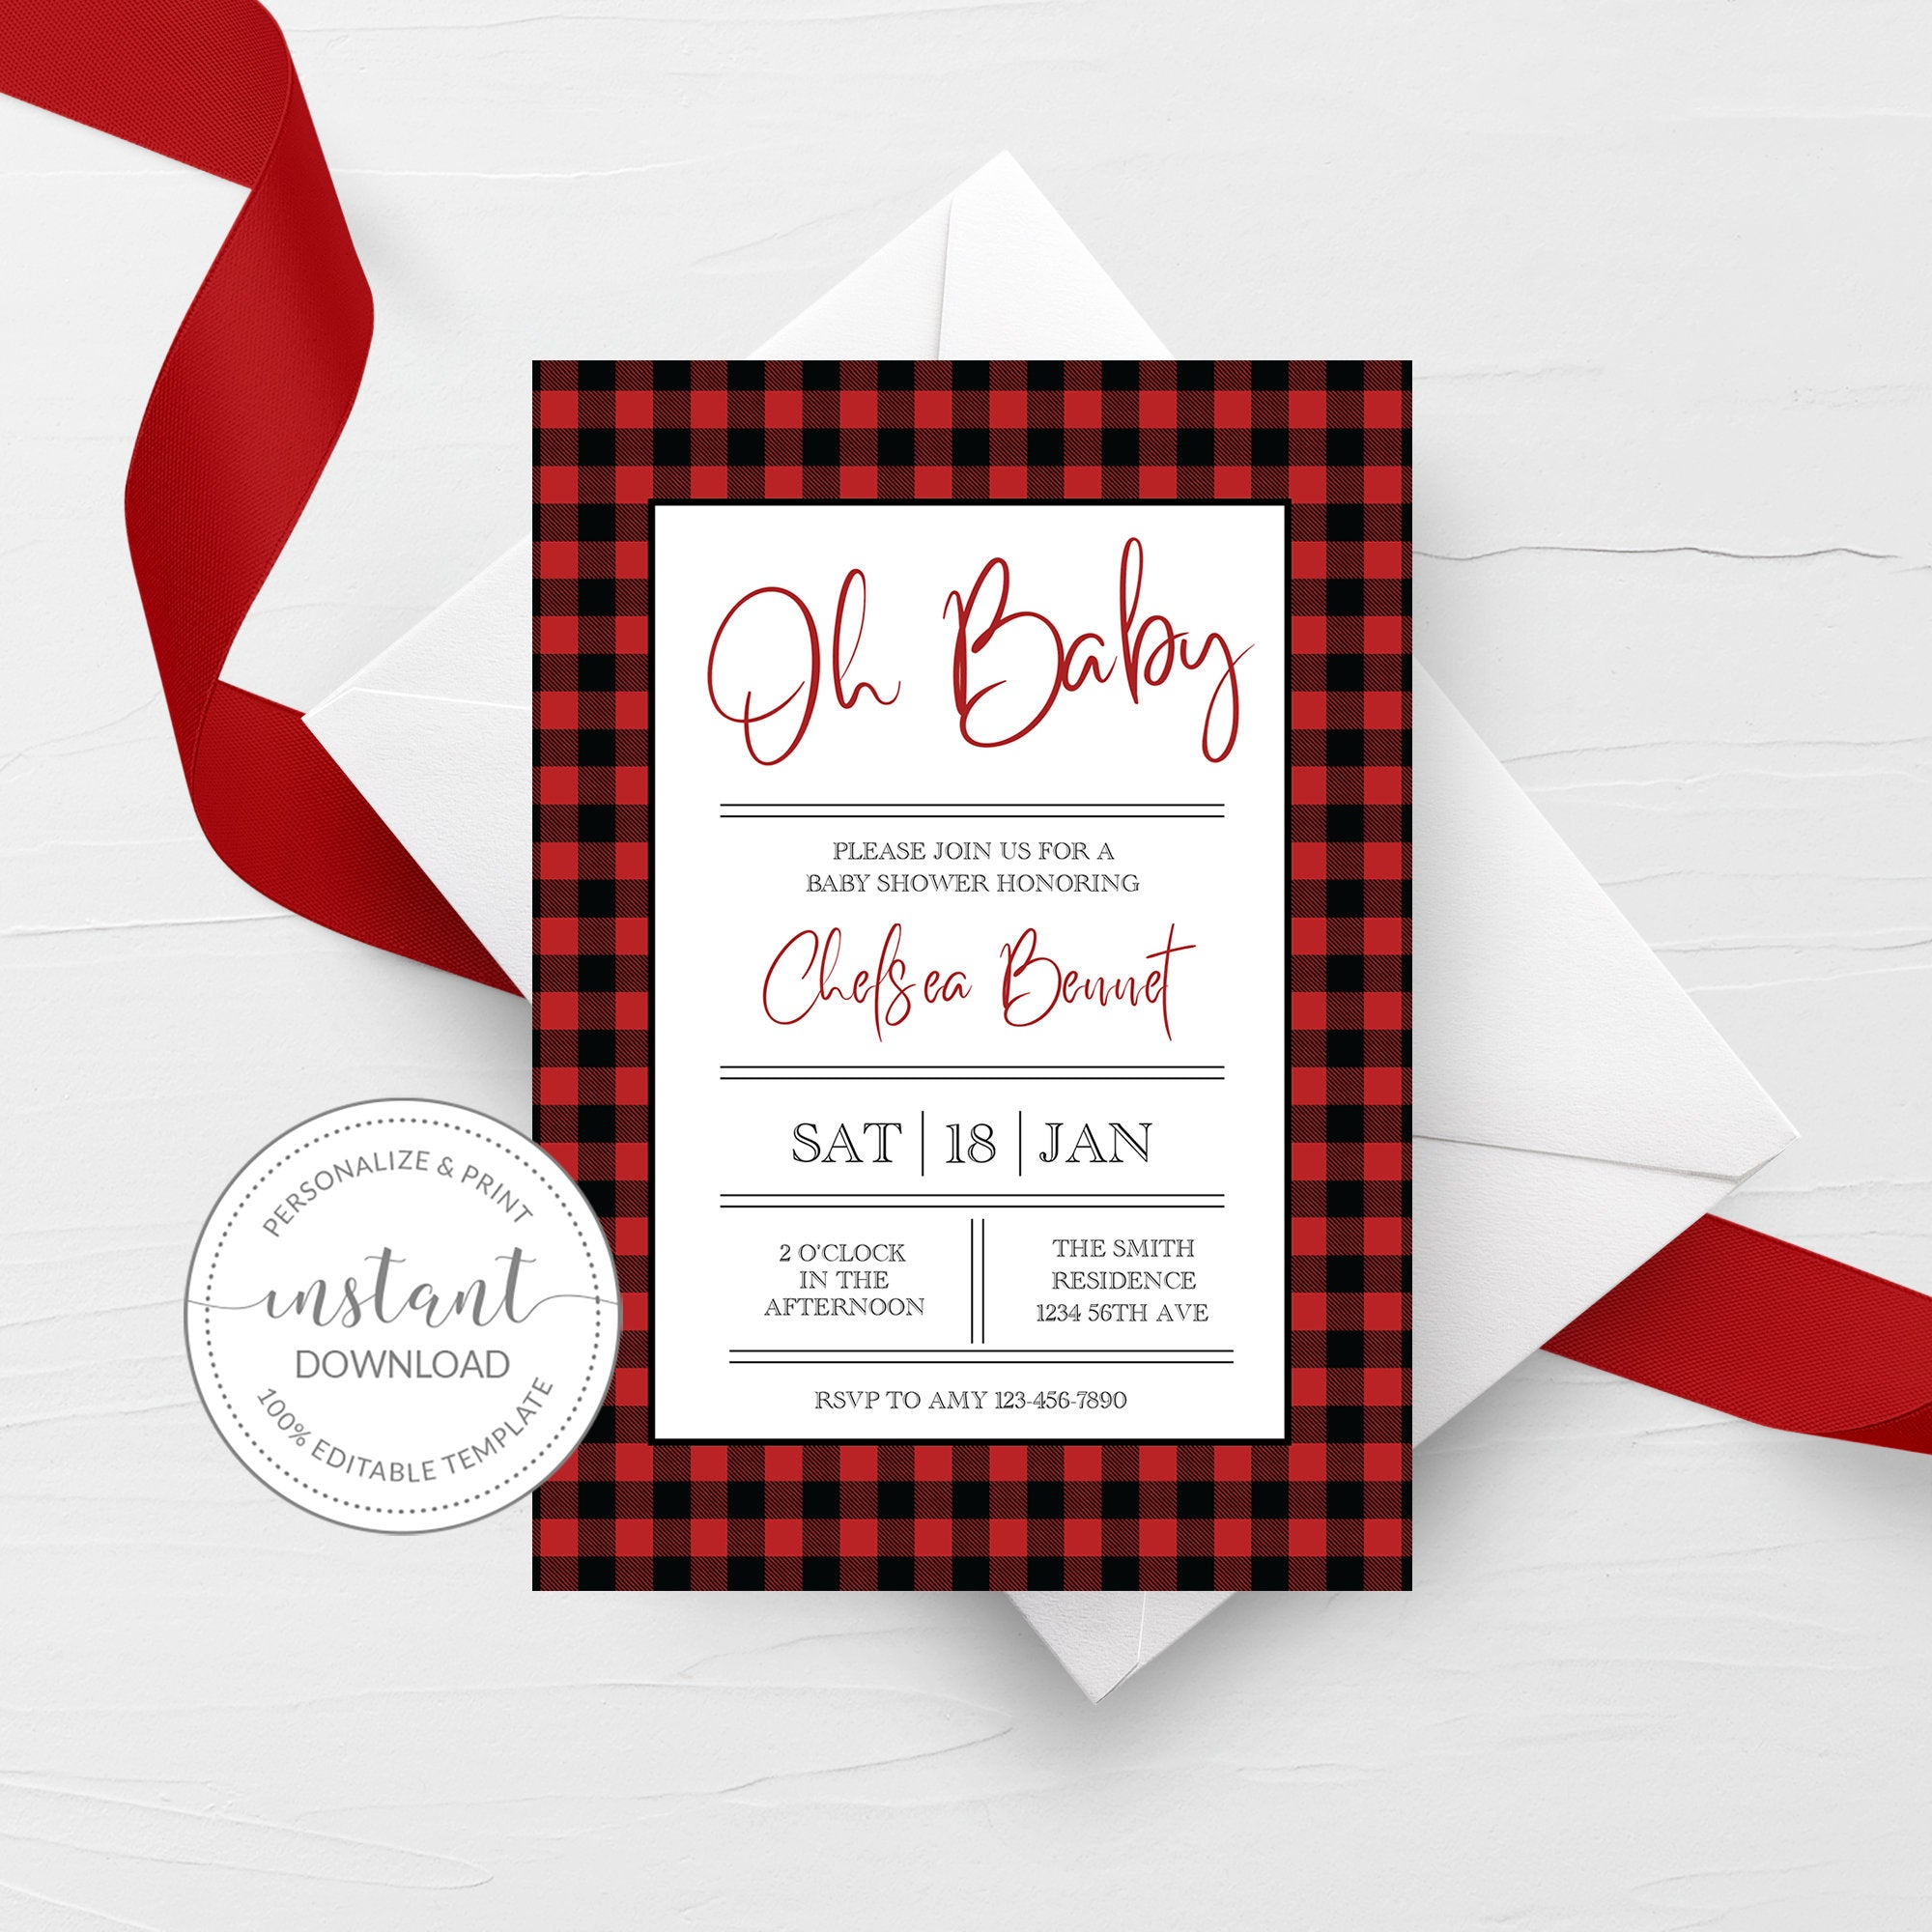 Buffalo Plaid Baby Shower Invitation Template, Lumberjack Baby Shower Invite, Editable DIGITAL DOWNLOAD - BP100